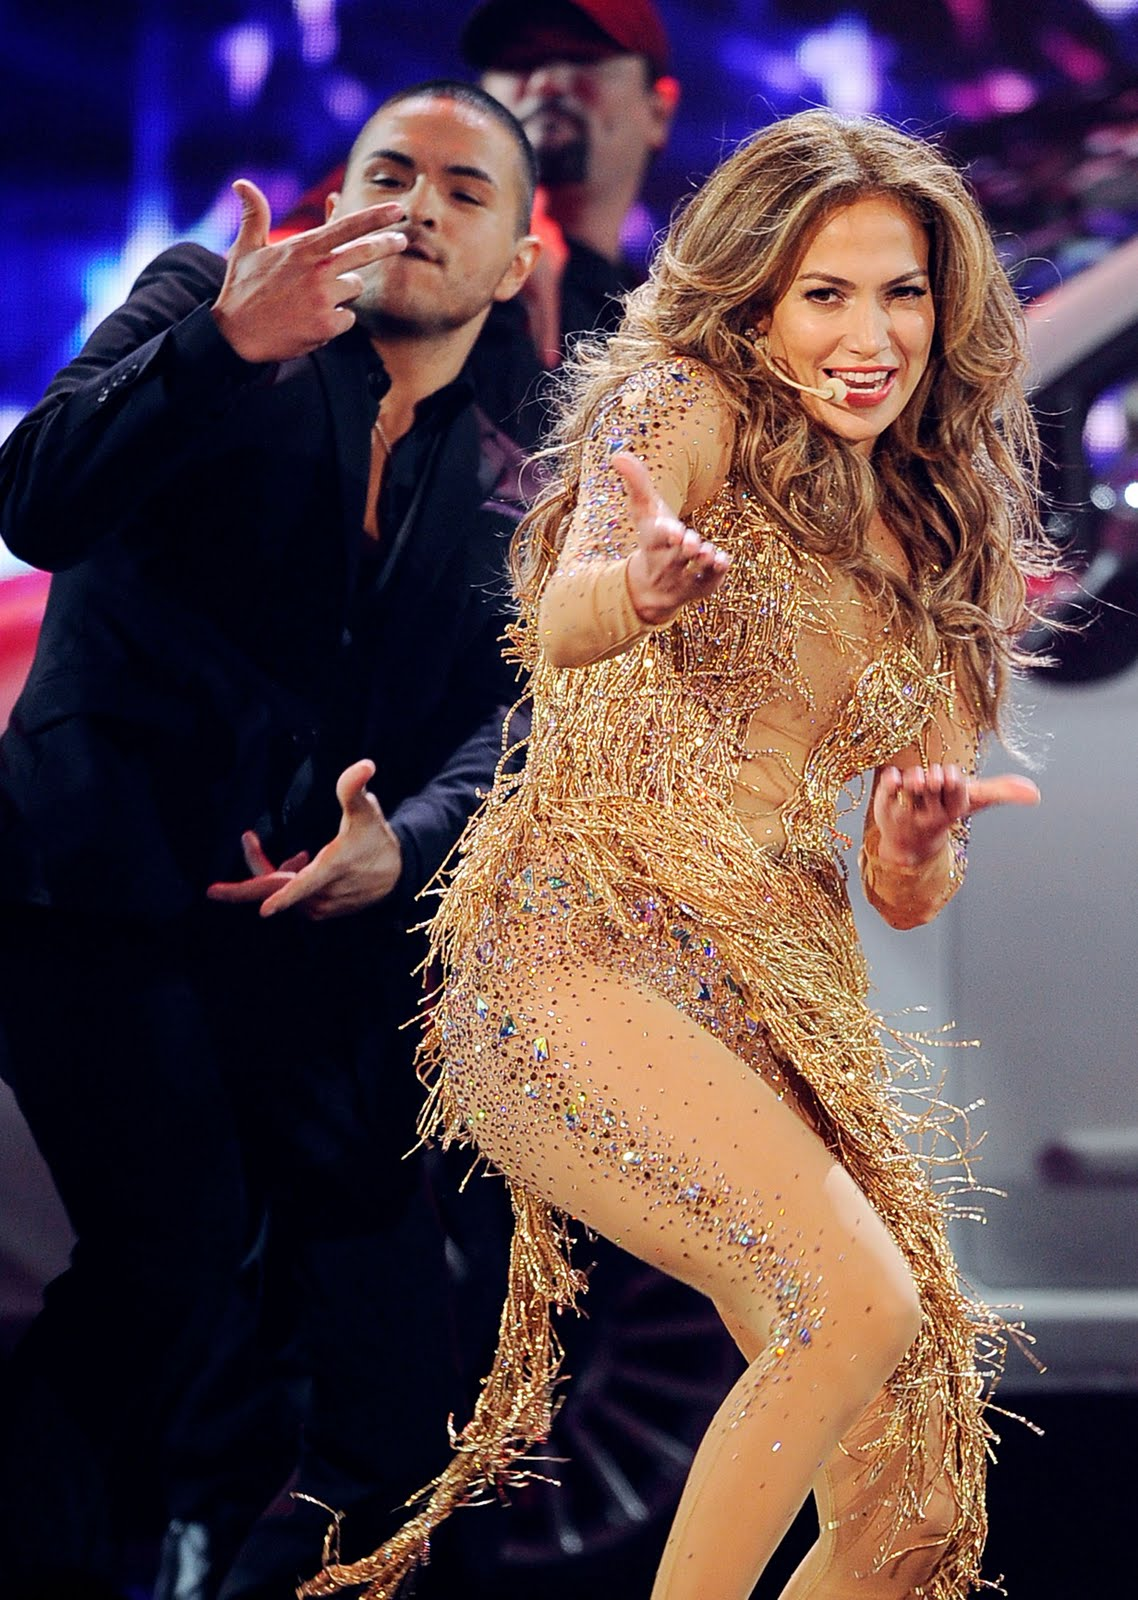 http://2.bp.blogspot.com/-ii8DURTGSKI/TsqZJcMM-xI/AAAAAAAAMtg/pQvkd9VOoNc/s1600/Jennifer-Lopez-Performs-at-the-American-Music-Awards-in-Los-Angeles-8.jpg